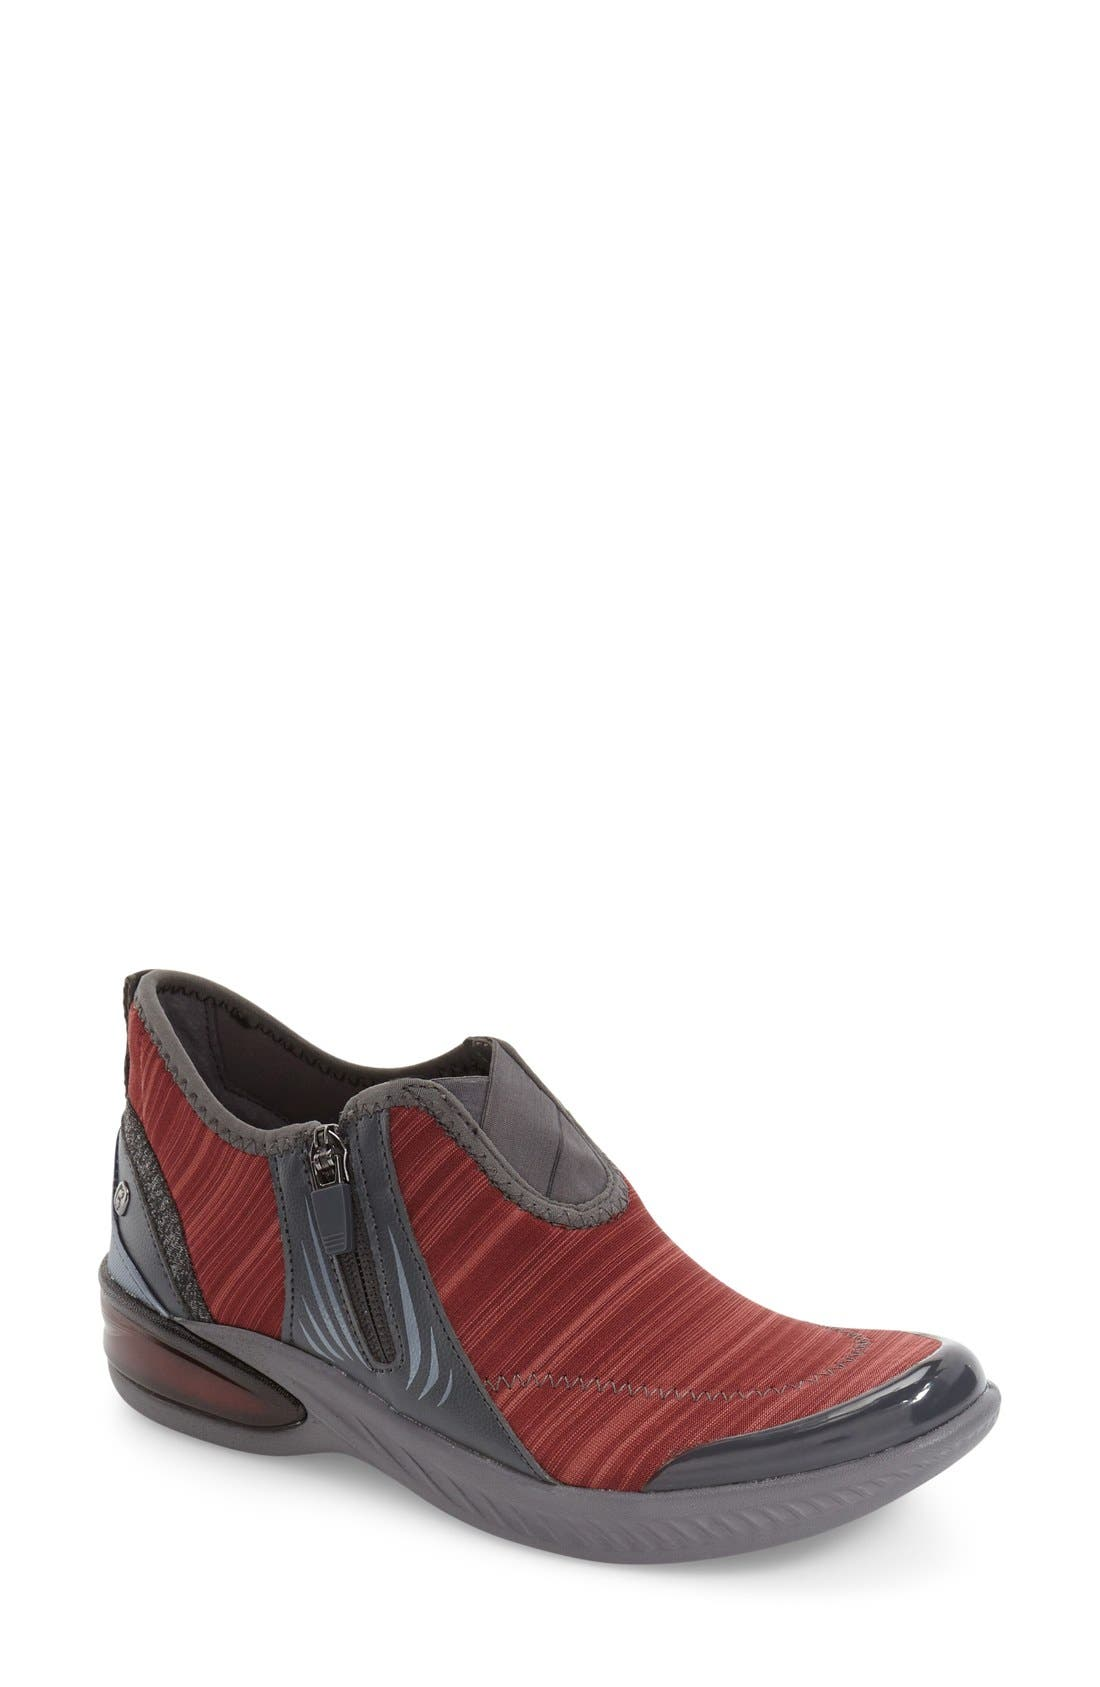 Nova Midi Sneaker,                         Main,                         color, DARK RED LINEAR HEATHER FABRIC